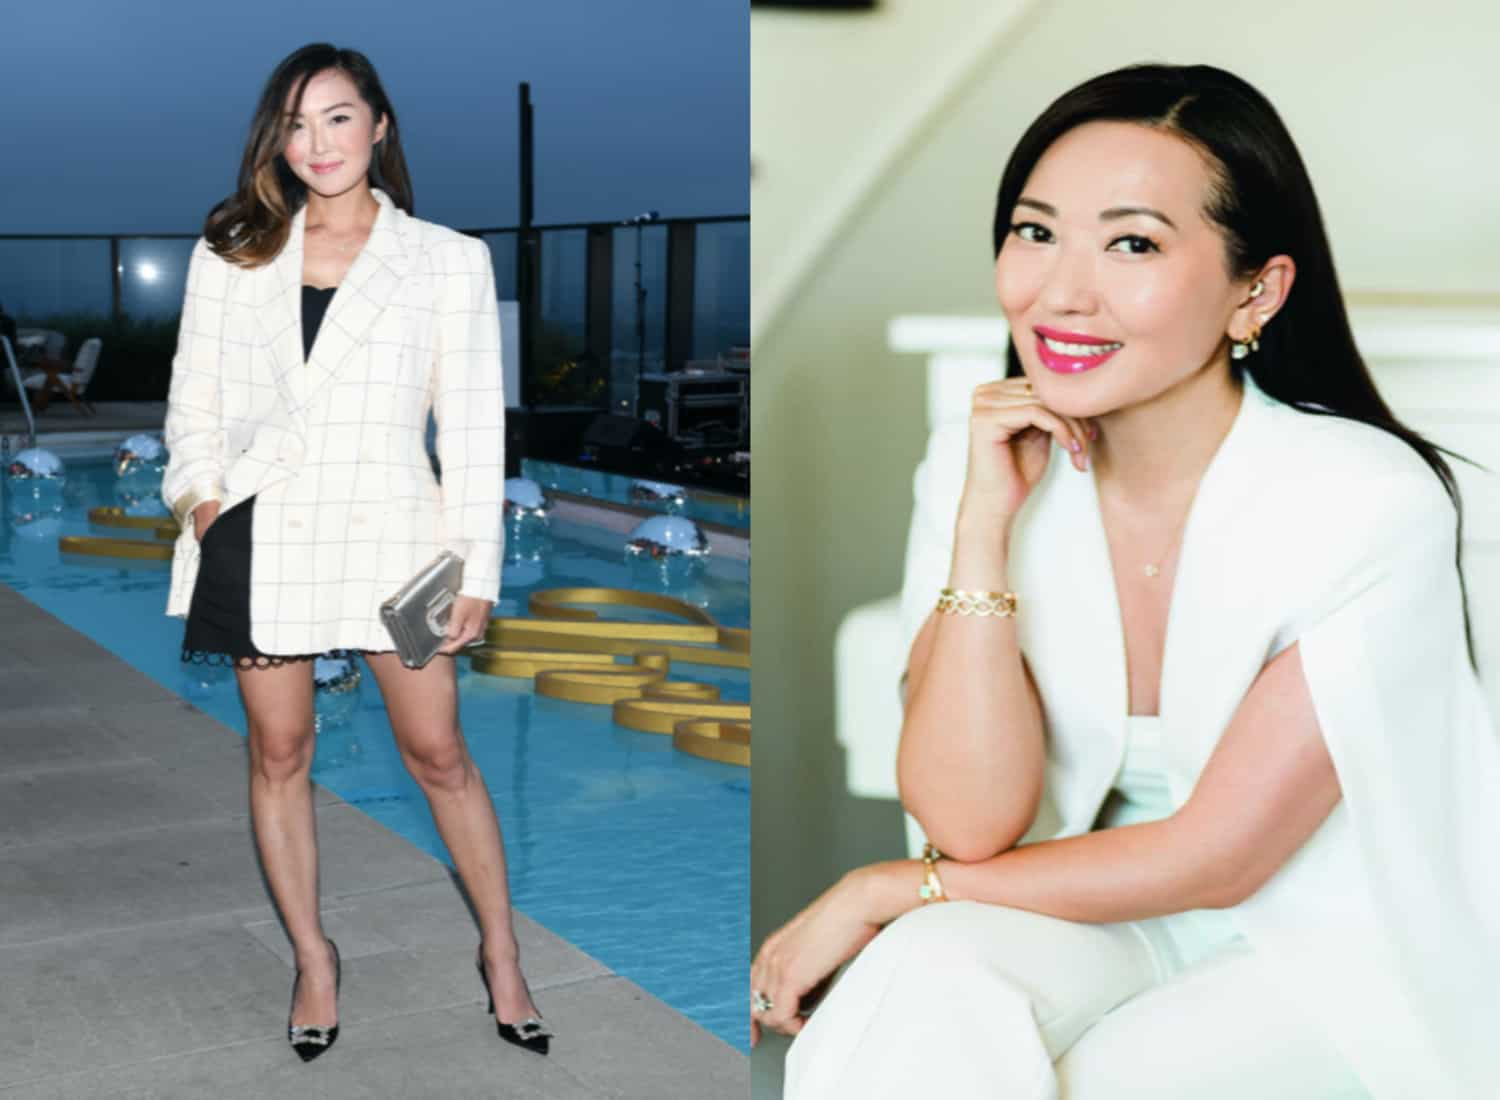 fashionweekdaily.com: Elle Spotlights Challenges Faced By AAPI Beauty Leaders